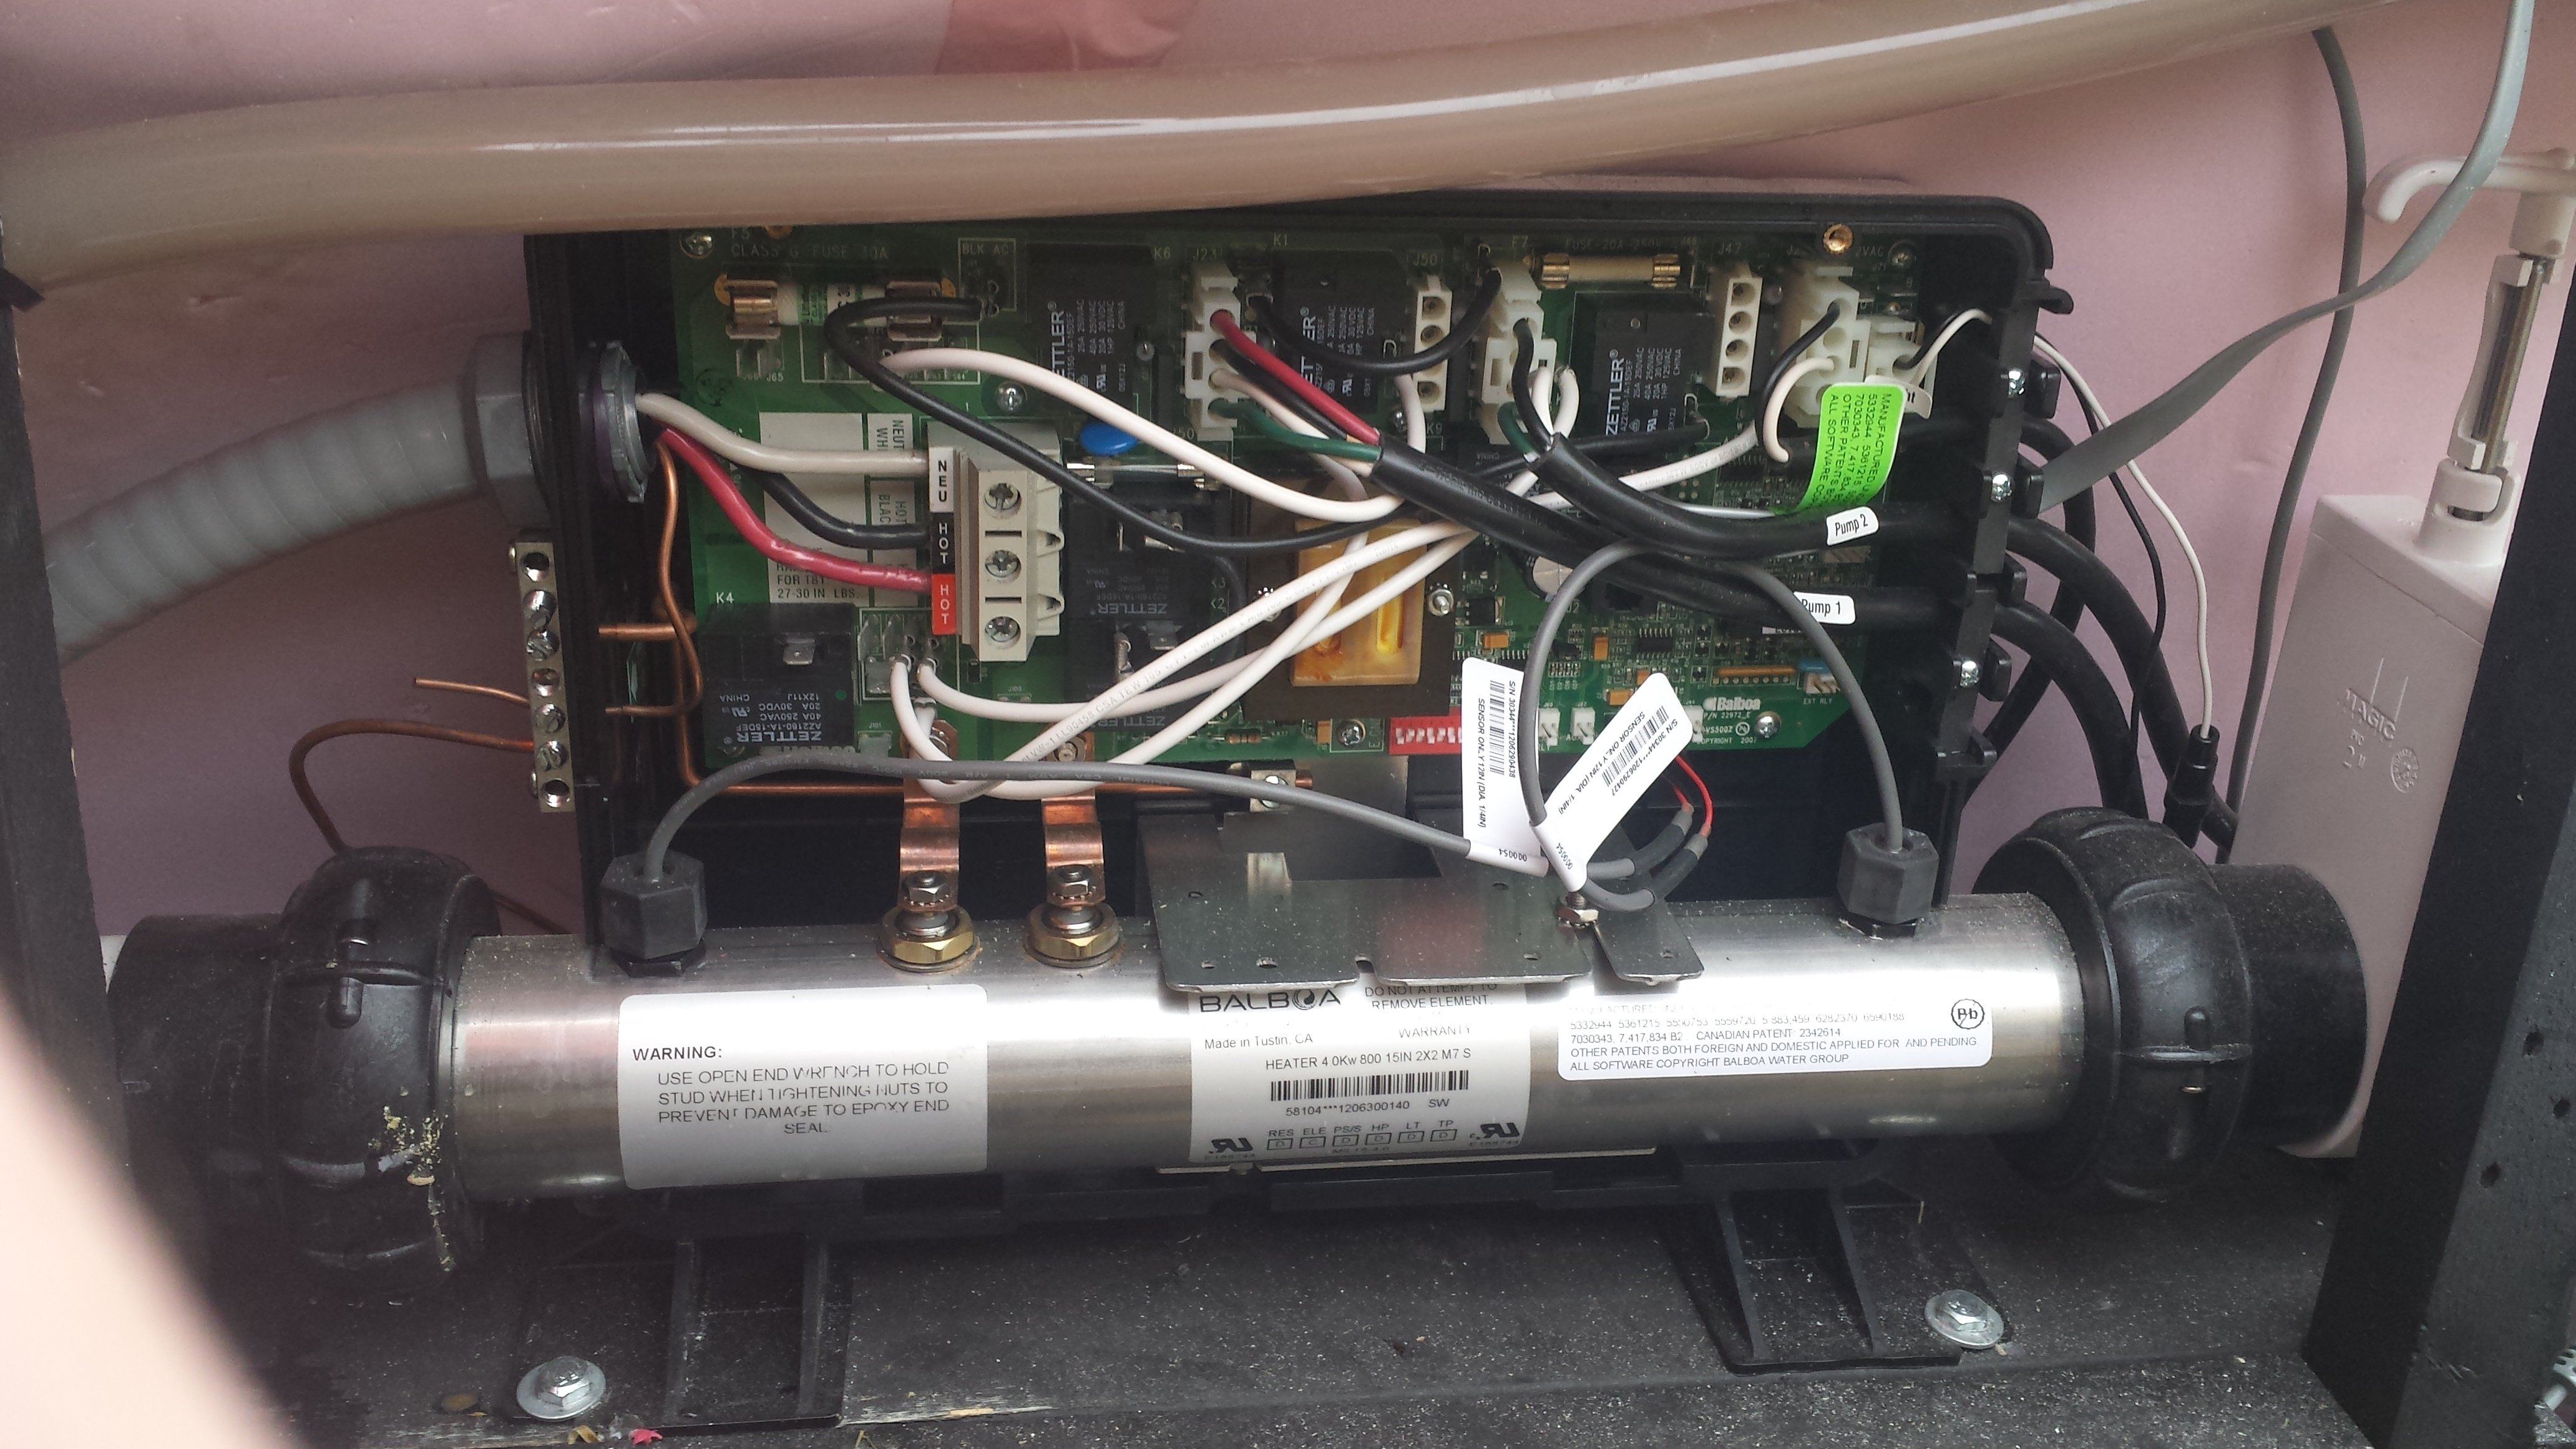 2013 12 01_181248_inside_hot_tub twilight series hot tub, model 7 2 hot tub lost power, says ice hot tub fuse box installation at webbmarketing.co